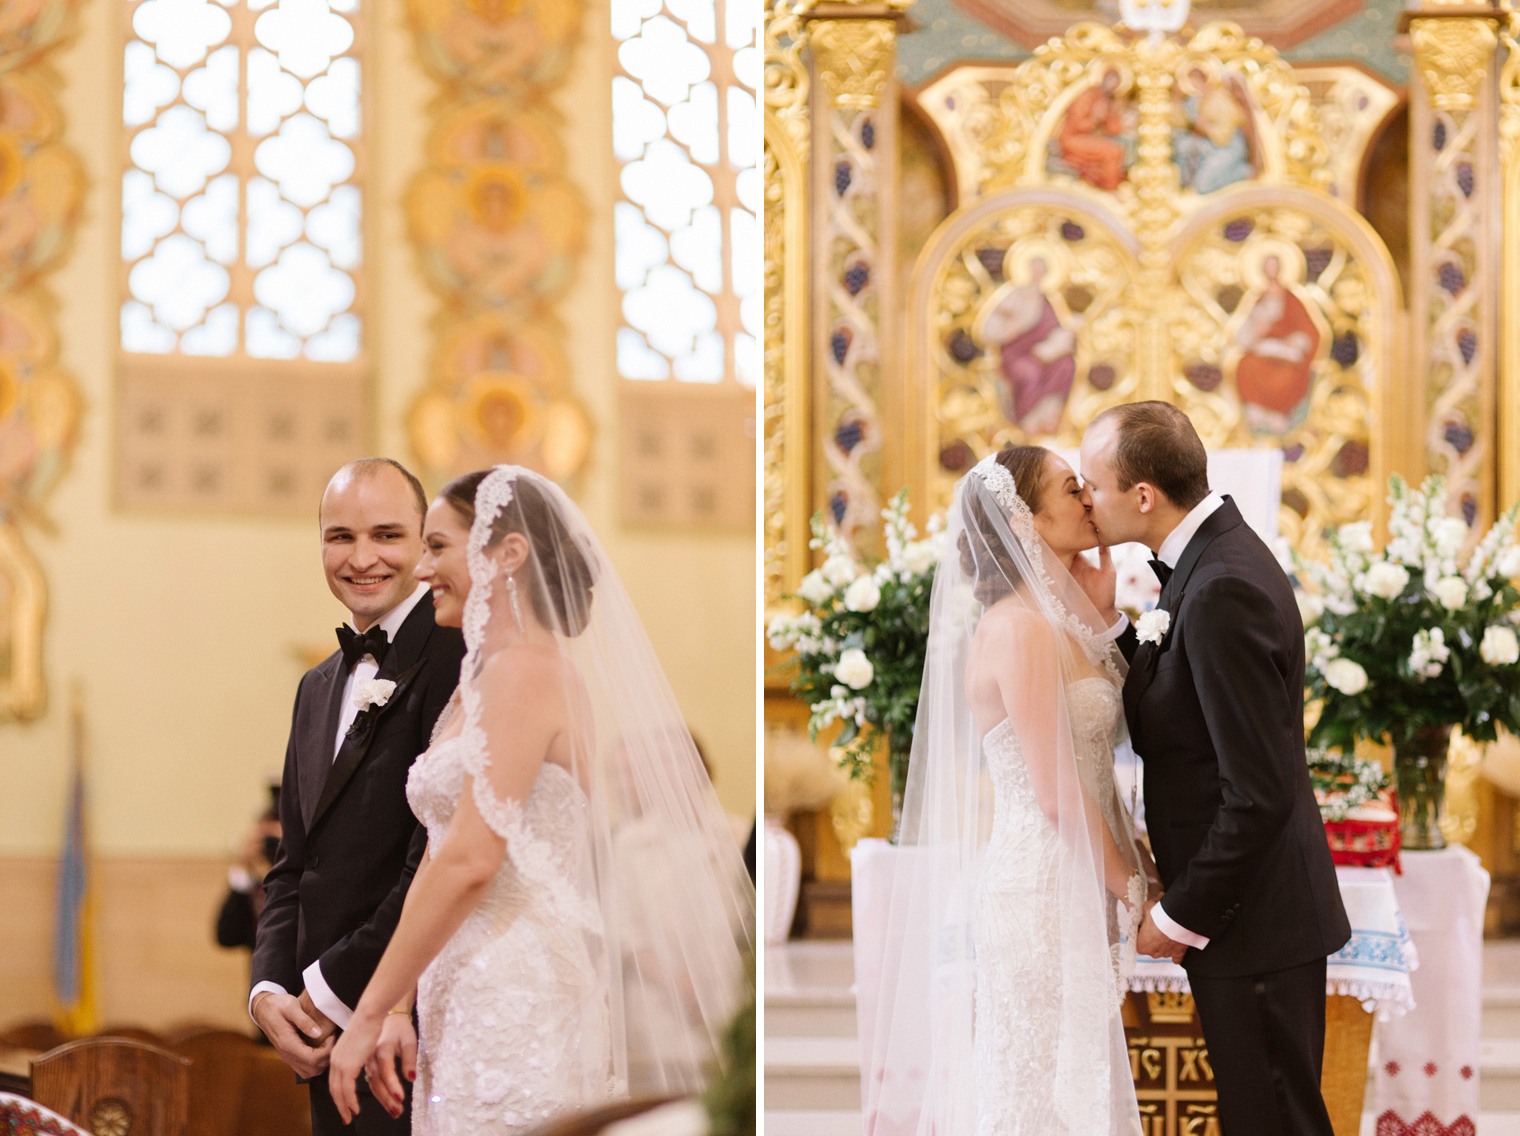 Bride and groom share their first kiss during wedding ceremony at Immaculate Conception Ukrainian Rite Catholic Church in Hamtramck Michigan.